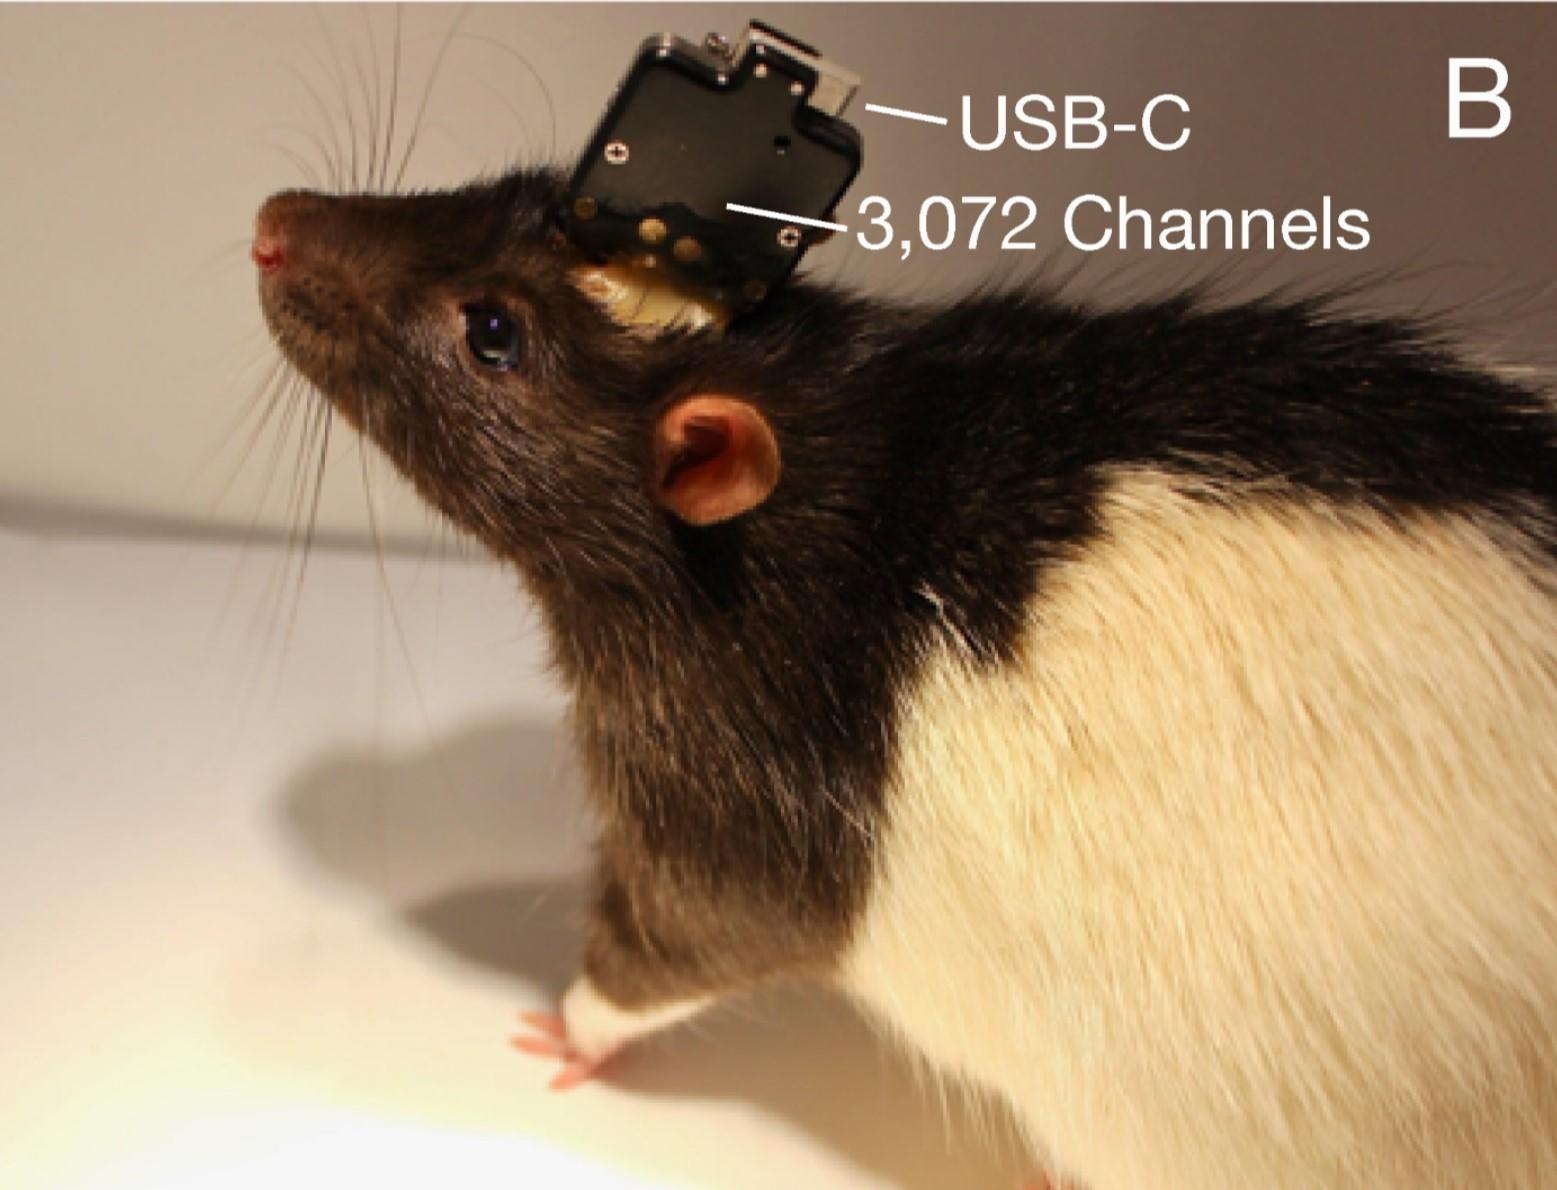 On this rat, Neuralink's sensor chip connects to the outside world with a USB-C port. On humans, the plan is to communicate wirelessly so there won't be a cable plugged into your skull.